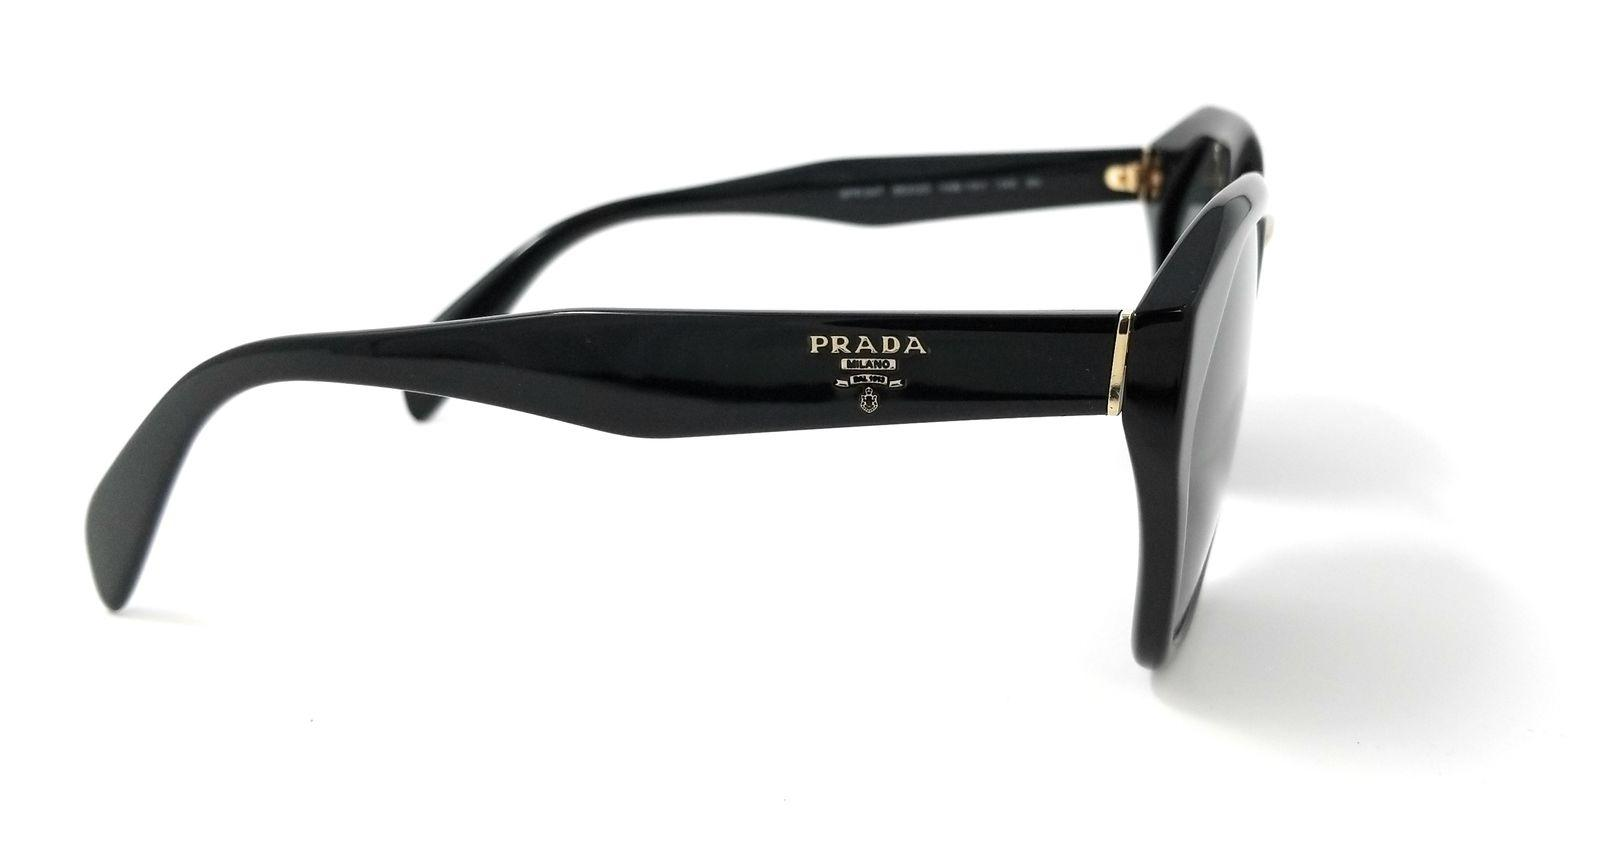 2c03d2427b31 ... spain prada black spr04ts 1ab1a1 black grey new sunglasses tradesy  d0740 dc65d